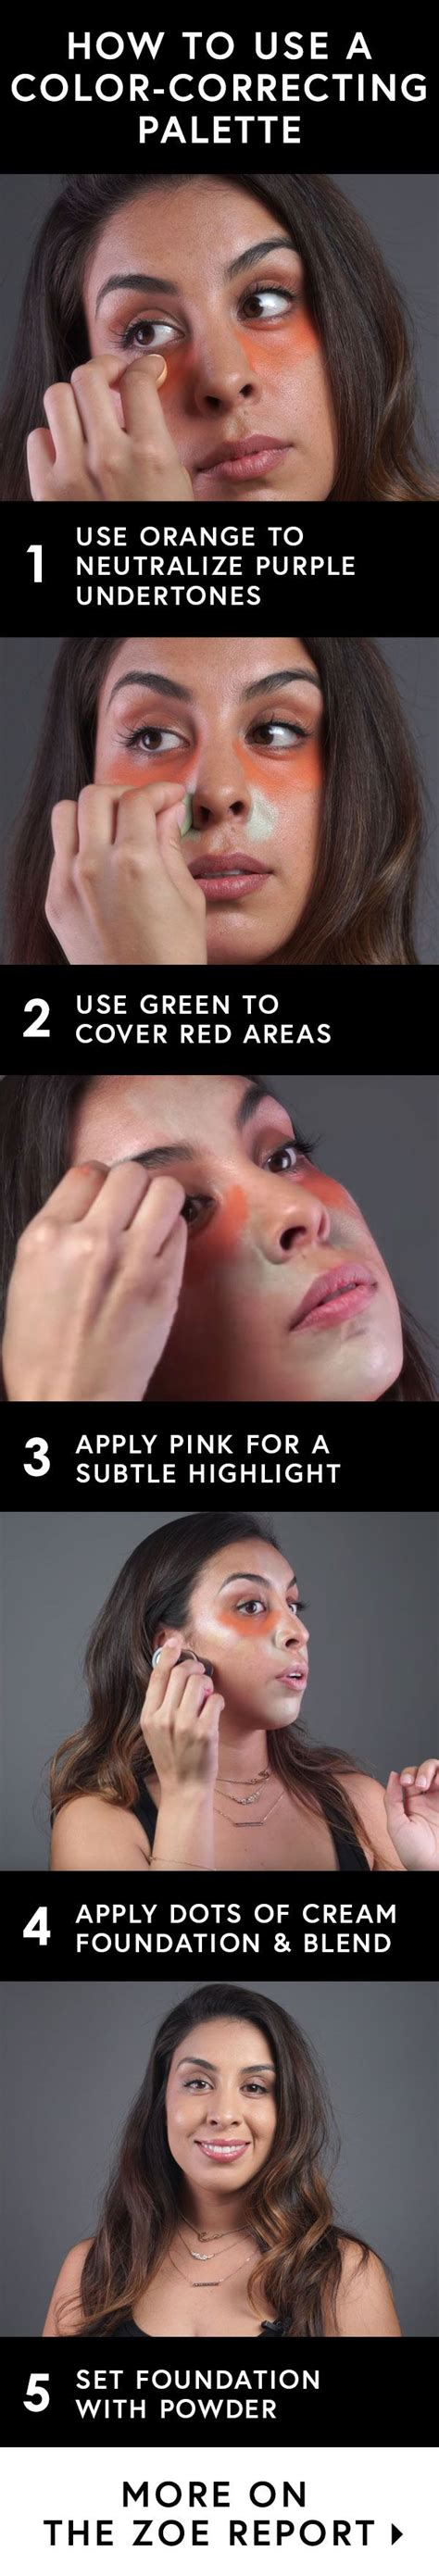 how to use colored concealer how to use a color correcting palette color